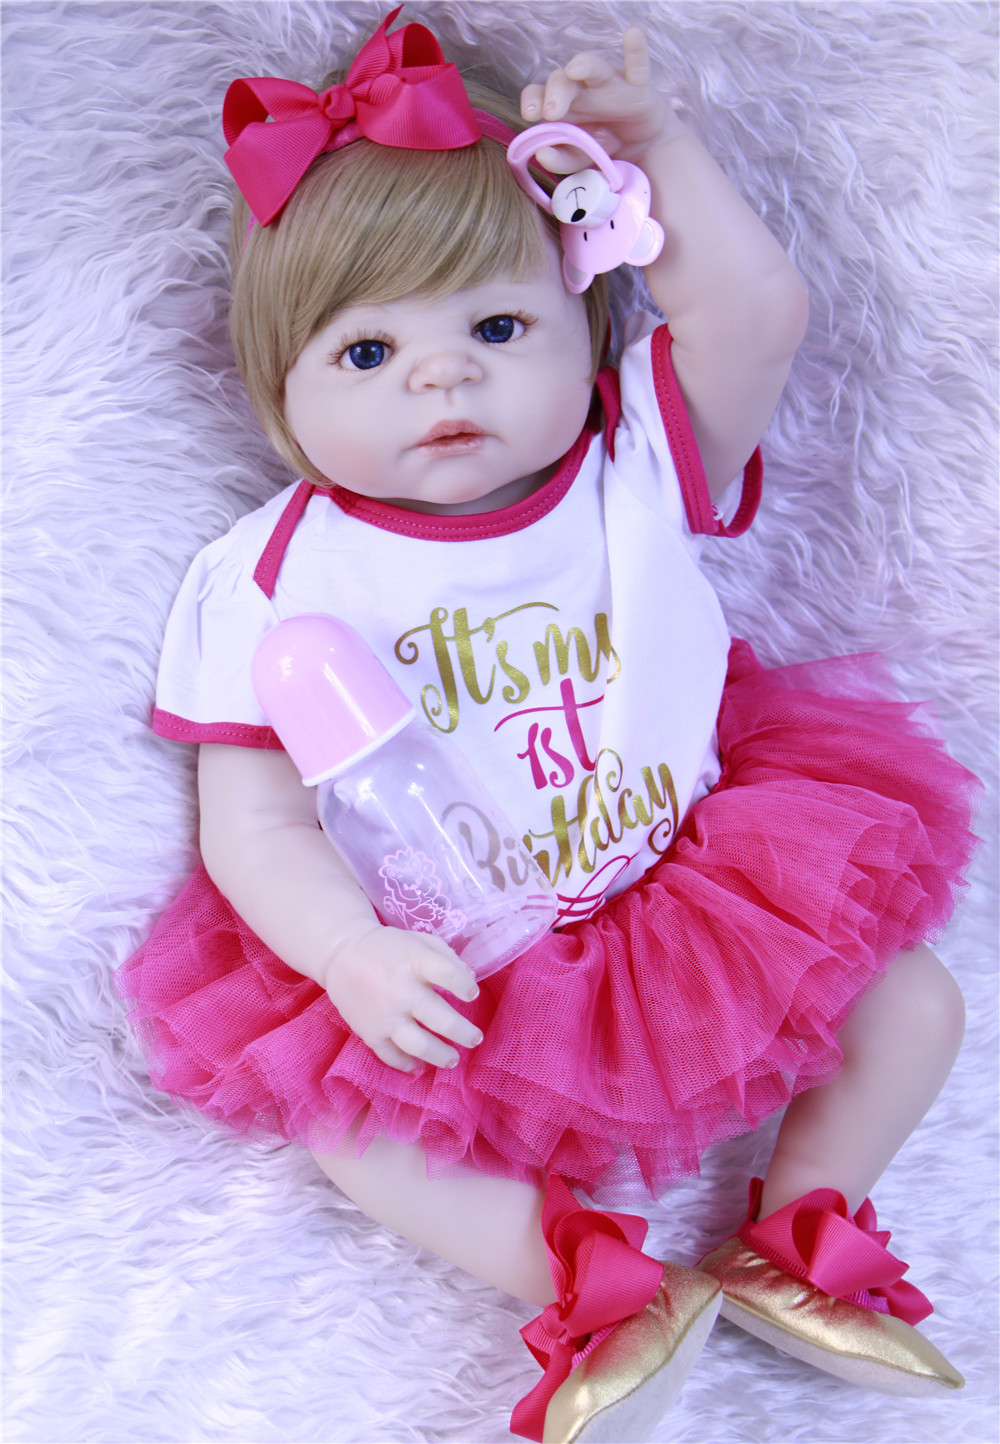 Full silicone reborn baby  dolls 22inch girl body reborn babies alive doll  bebe gift reborn bonecas blonde hair princessFull silicone reborn baby  dolls 22inch girl body reborn babies alive doll  bebe gift reborn bonecas blonde hair princess